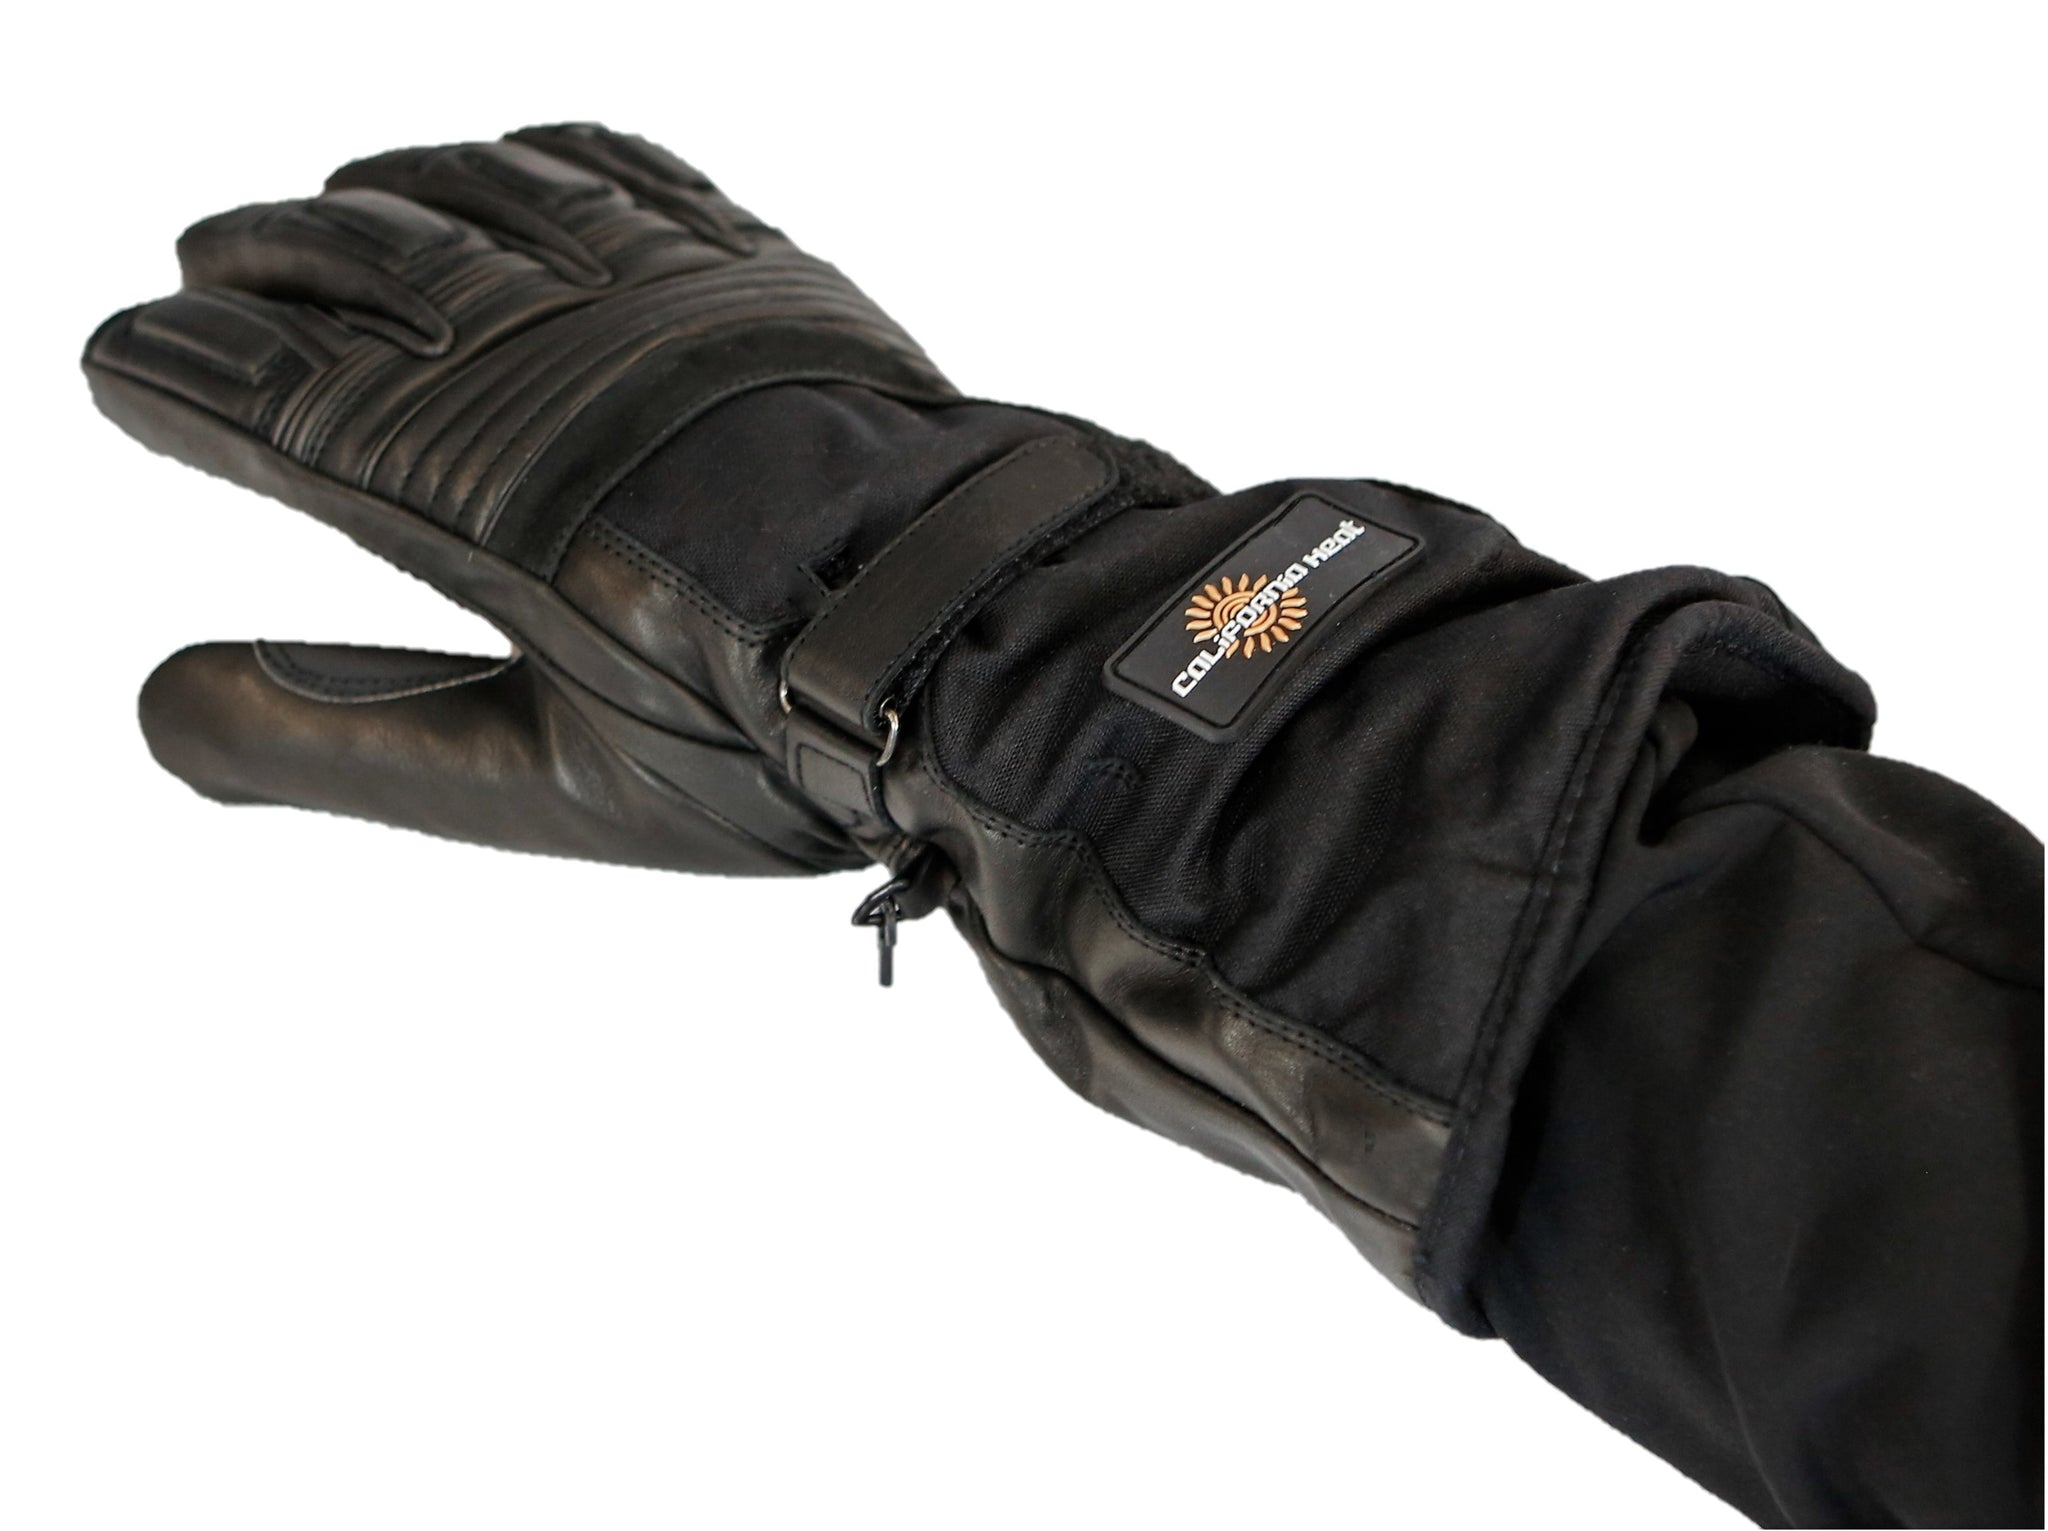 Heated Gauntlet Gloves